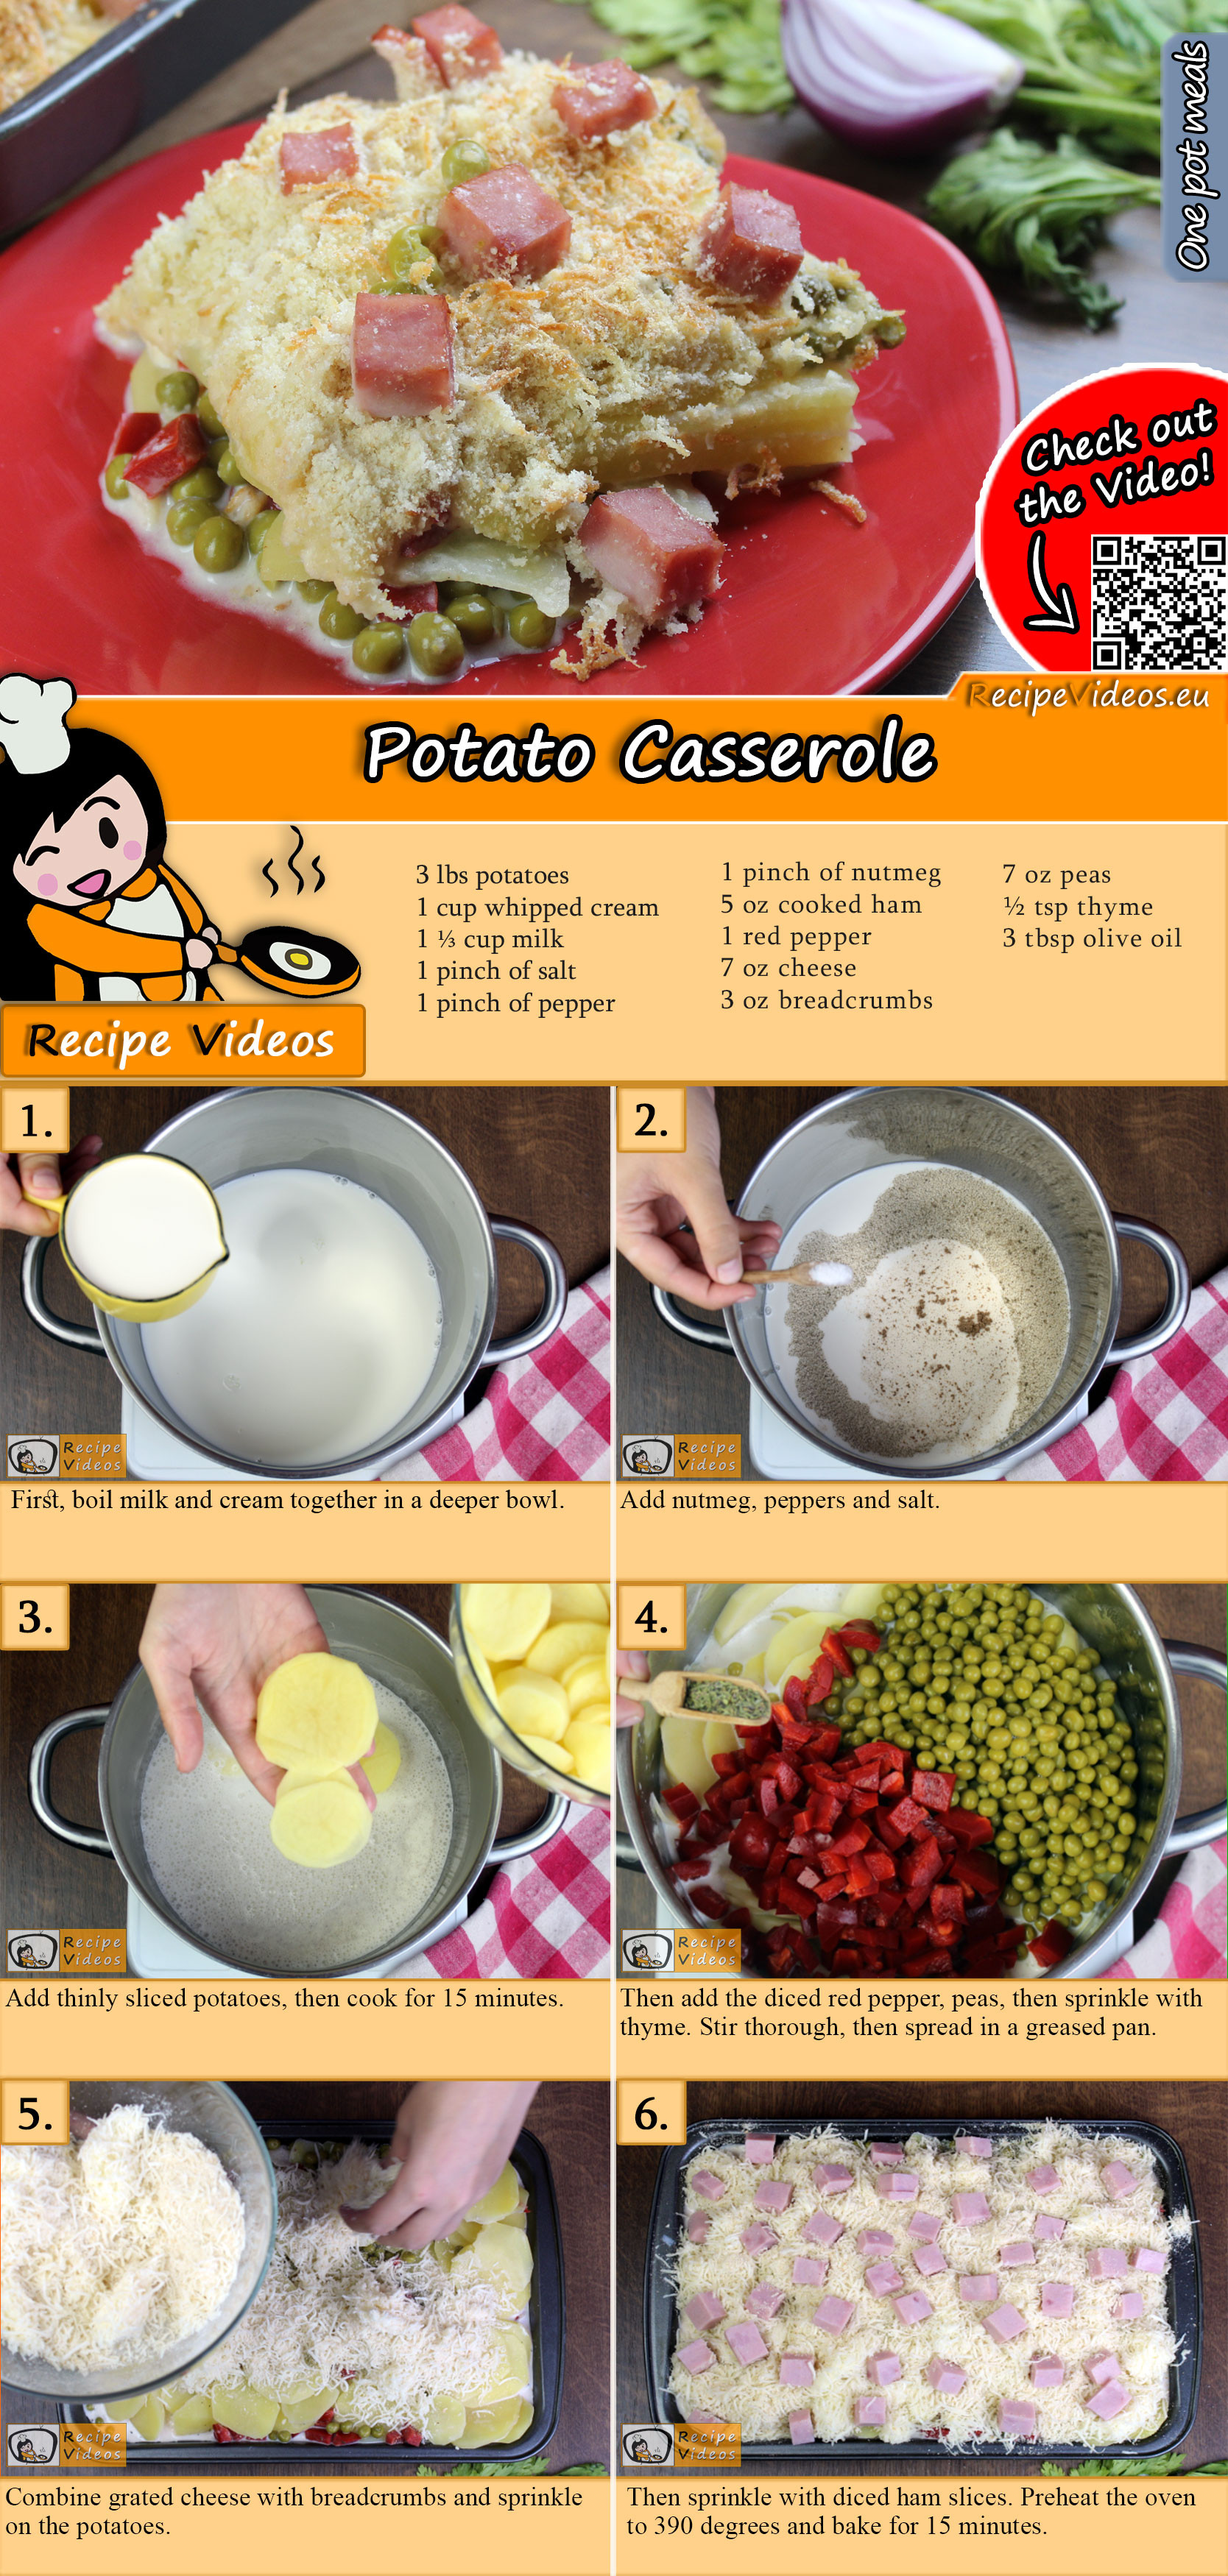 Potato casserole recipe with video